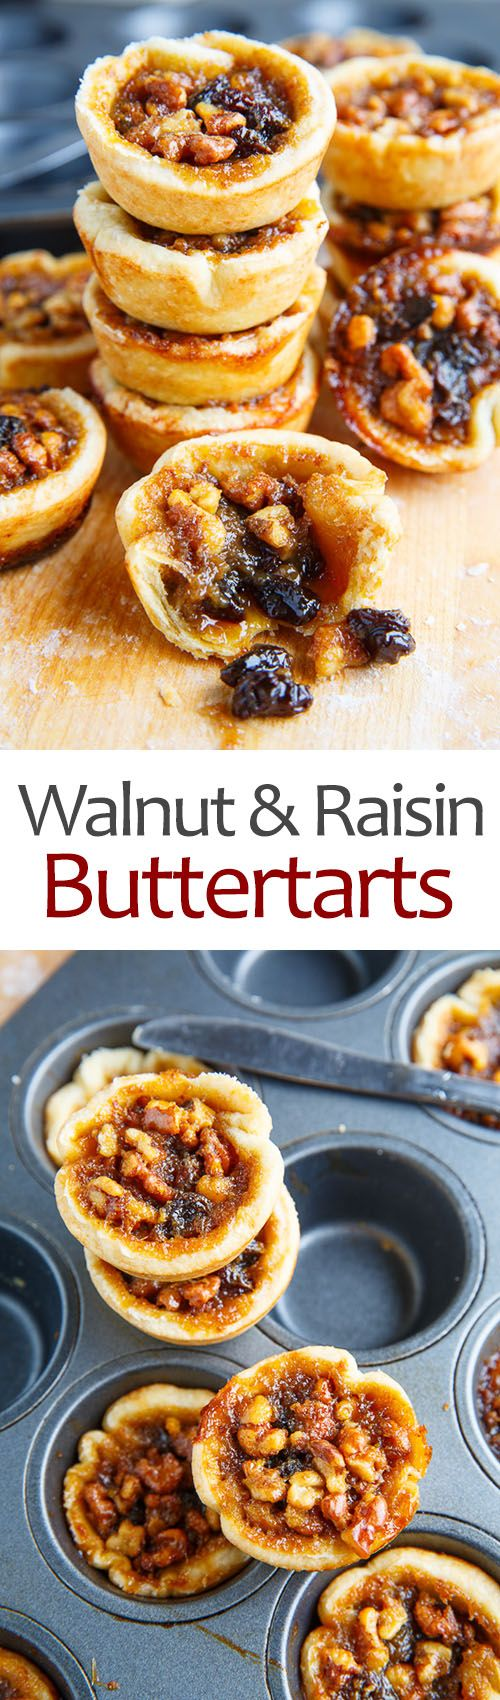 Walnut & Raisin Butter Tarts